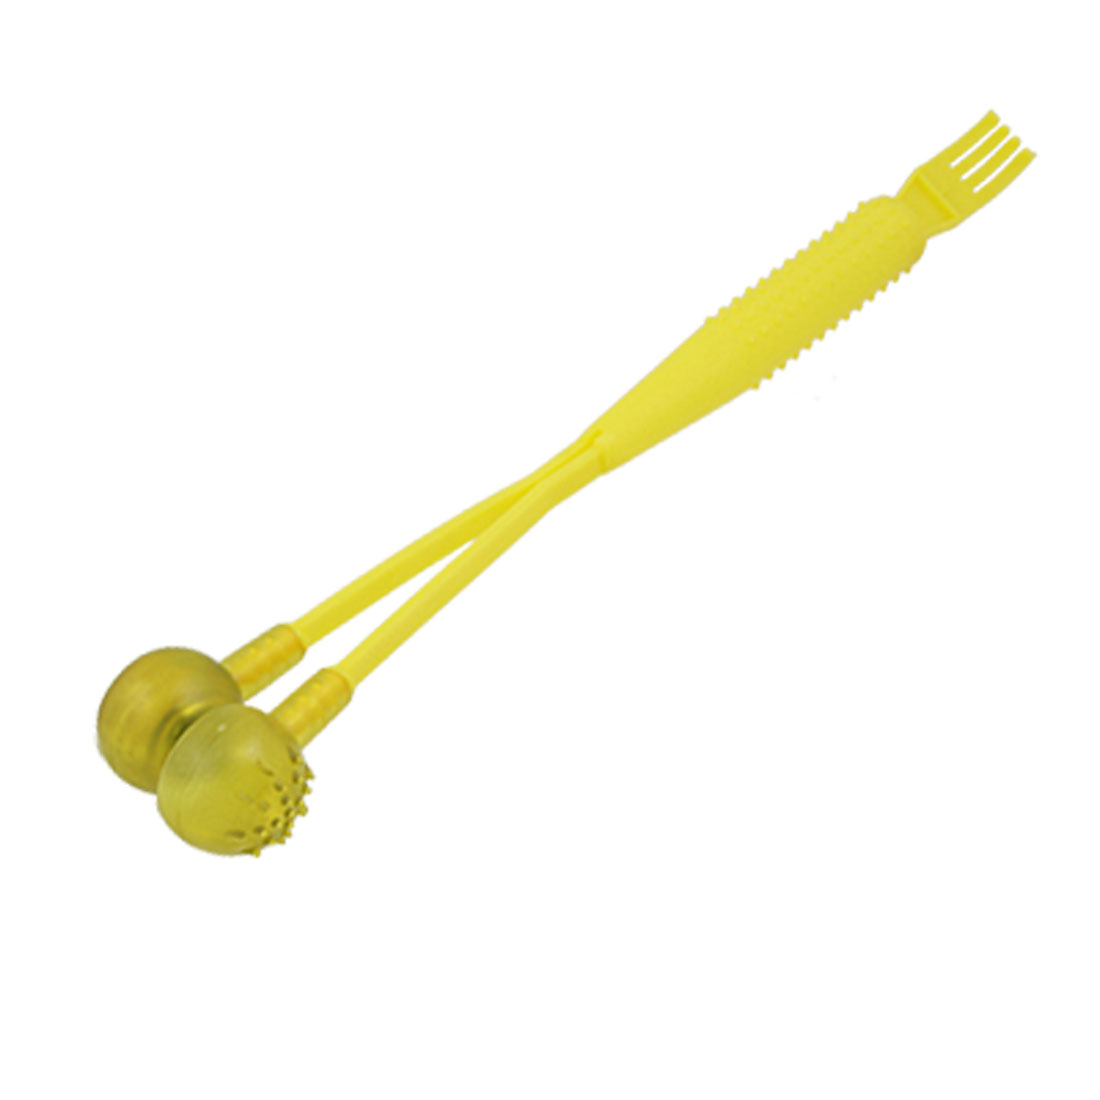 Yellow Plastic Nonslip Handle Magnetic Hammer Massage Stick w Scratcher